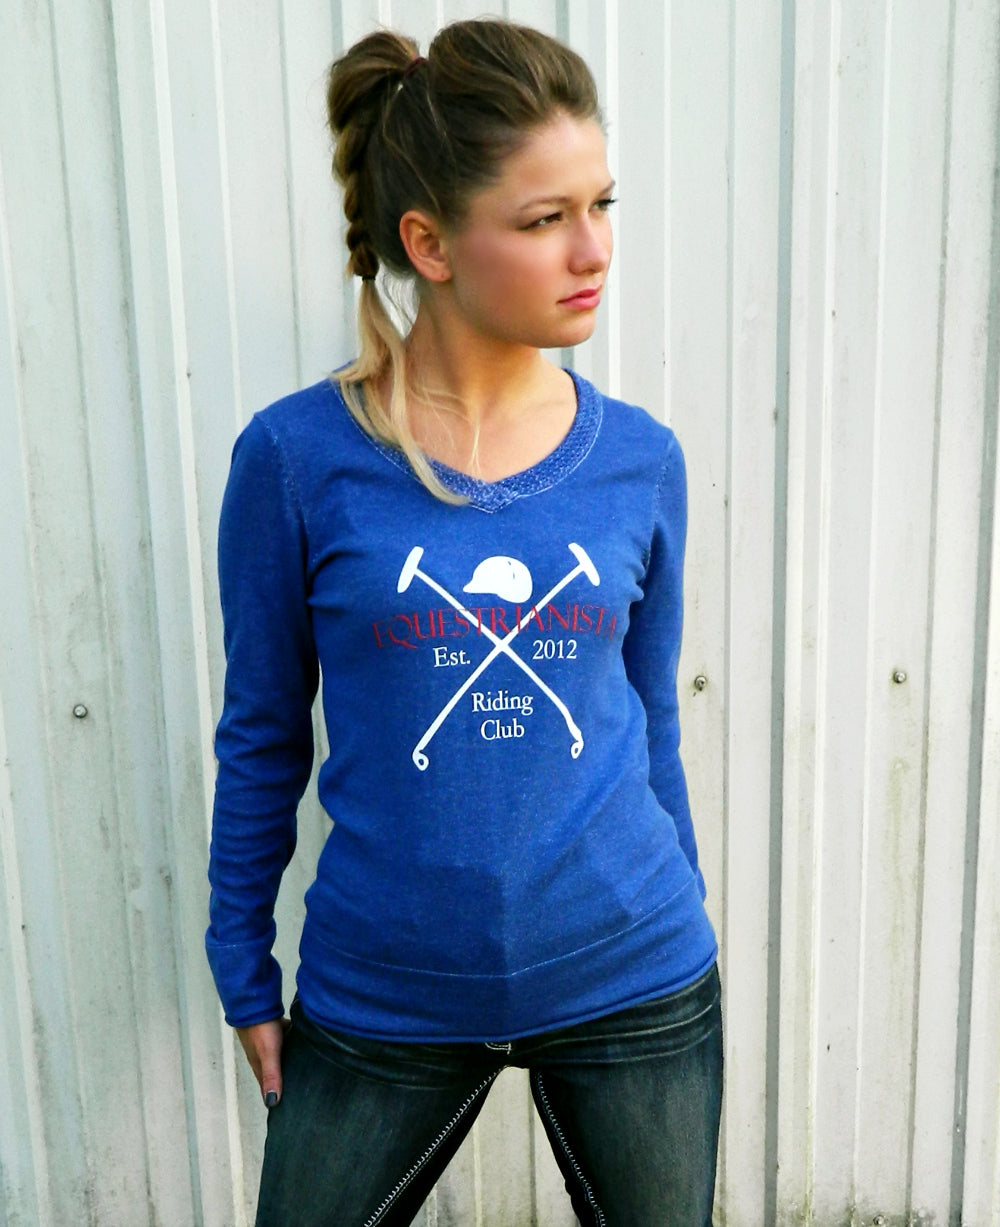 Women's Equestrian Riding Club Sweater in Blue by Equestrianista.